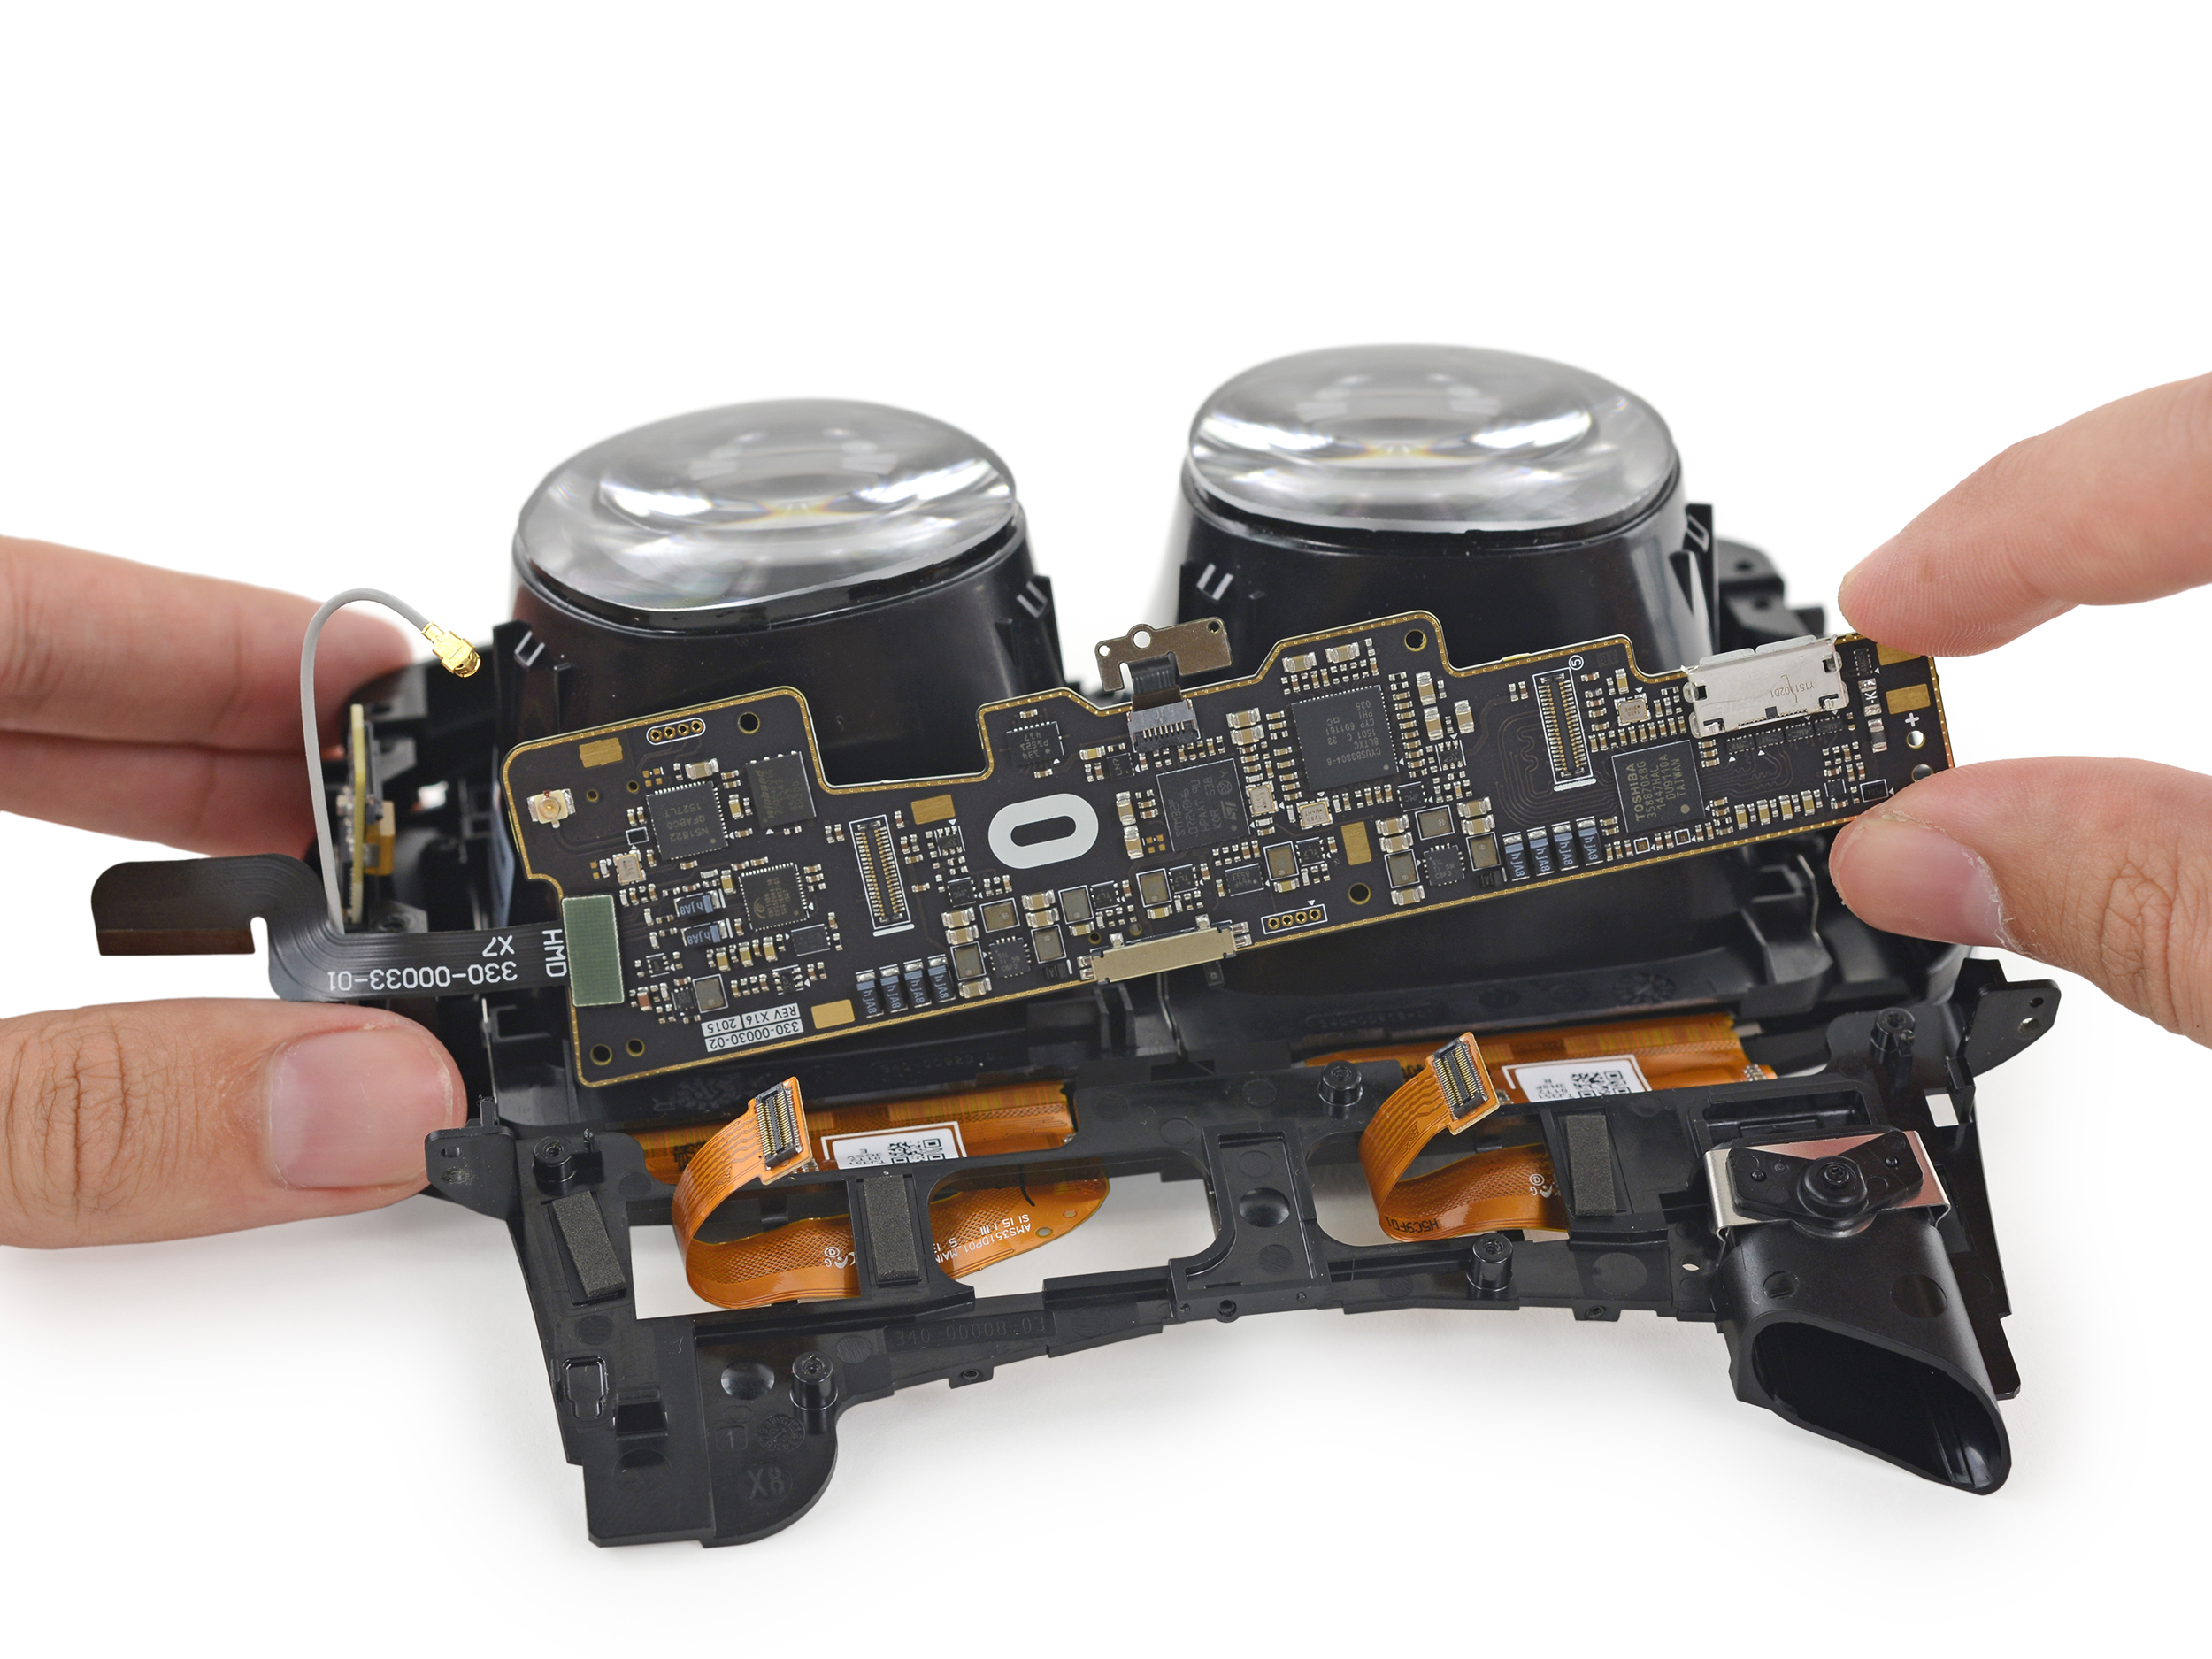 The headset's motherboard is located in the top of its lens assembly, as shown here.